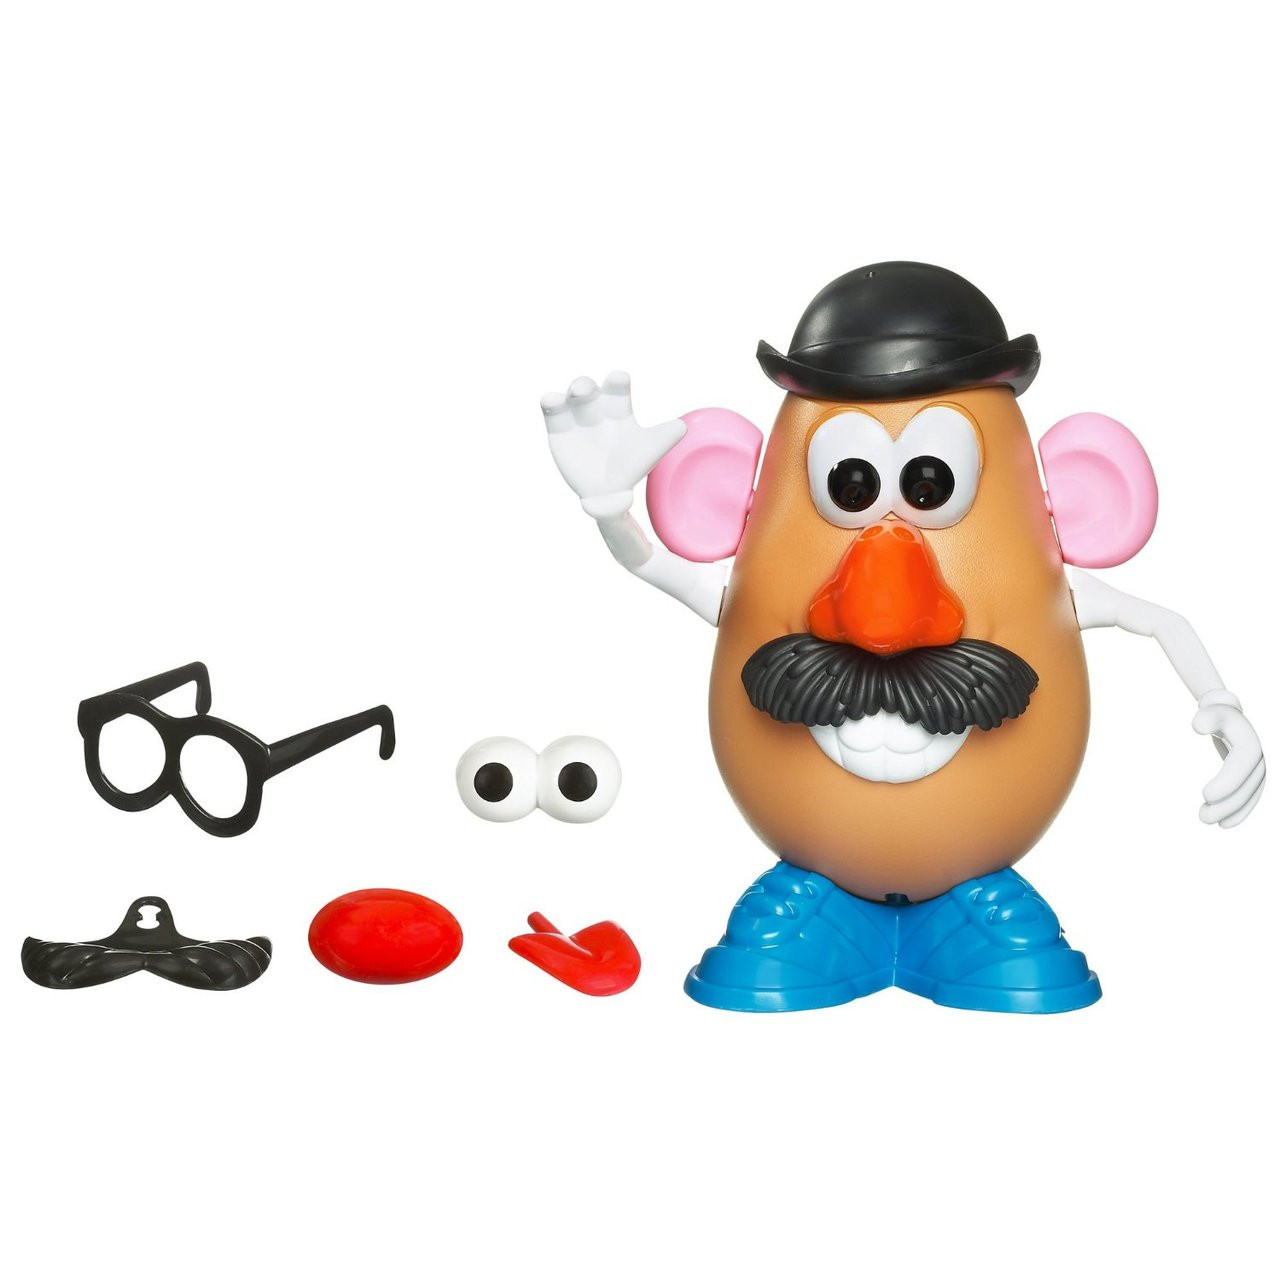 Mr Potato Head Toy Story 3 Classic Mr Potato Head